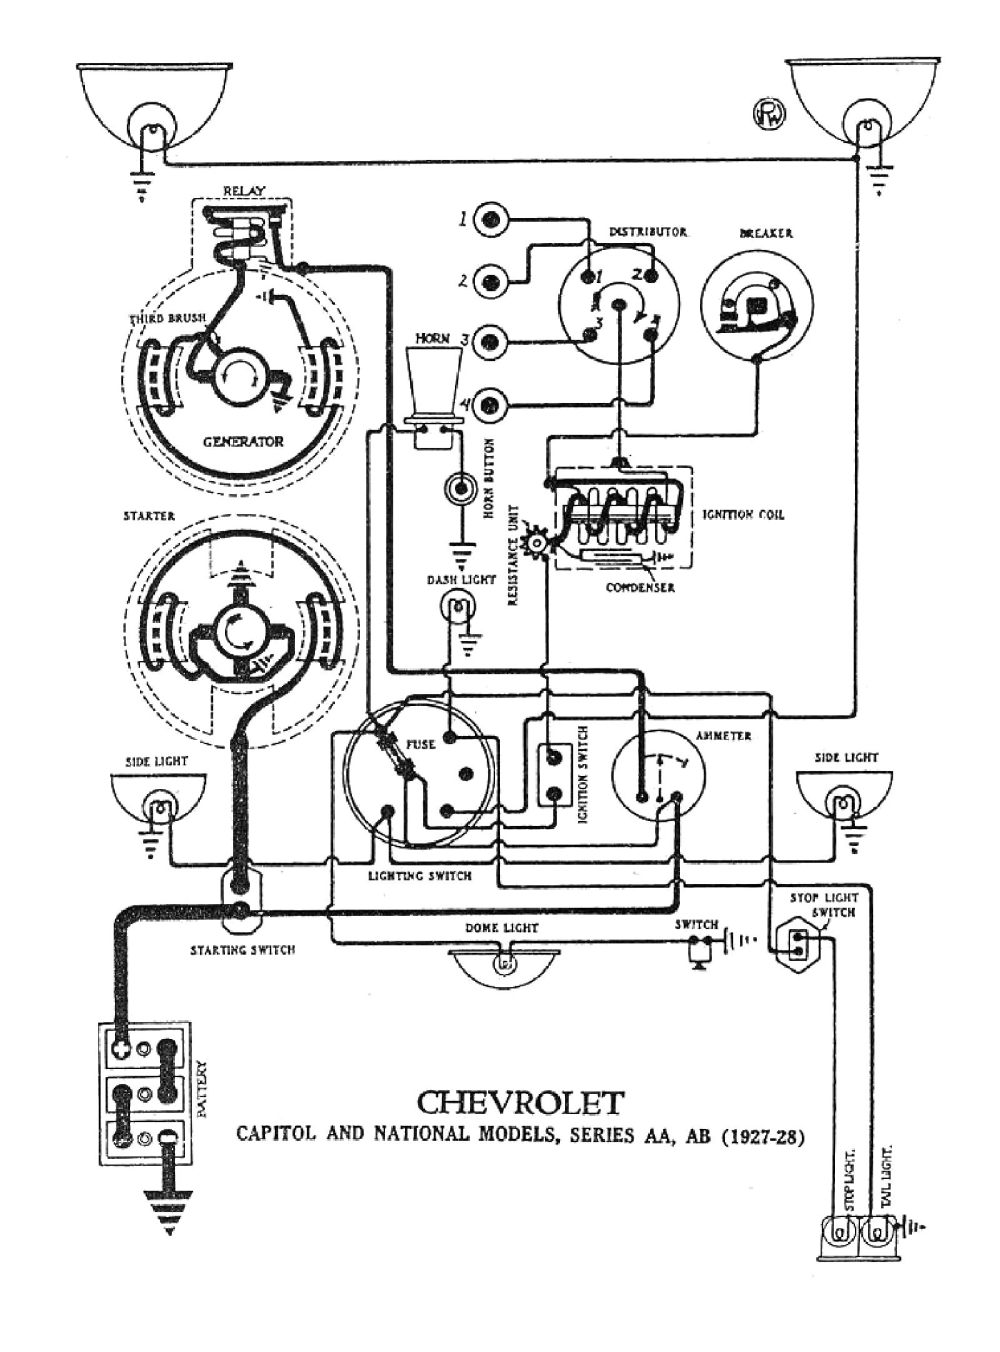 medium resolution of chevy wiring diagrams 2003 chevy wiring diagram 1927 capitol national models 1928 1928 wiring